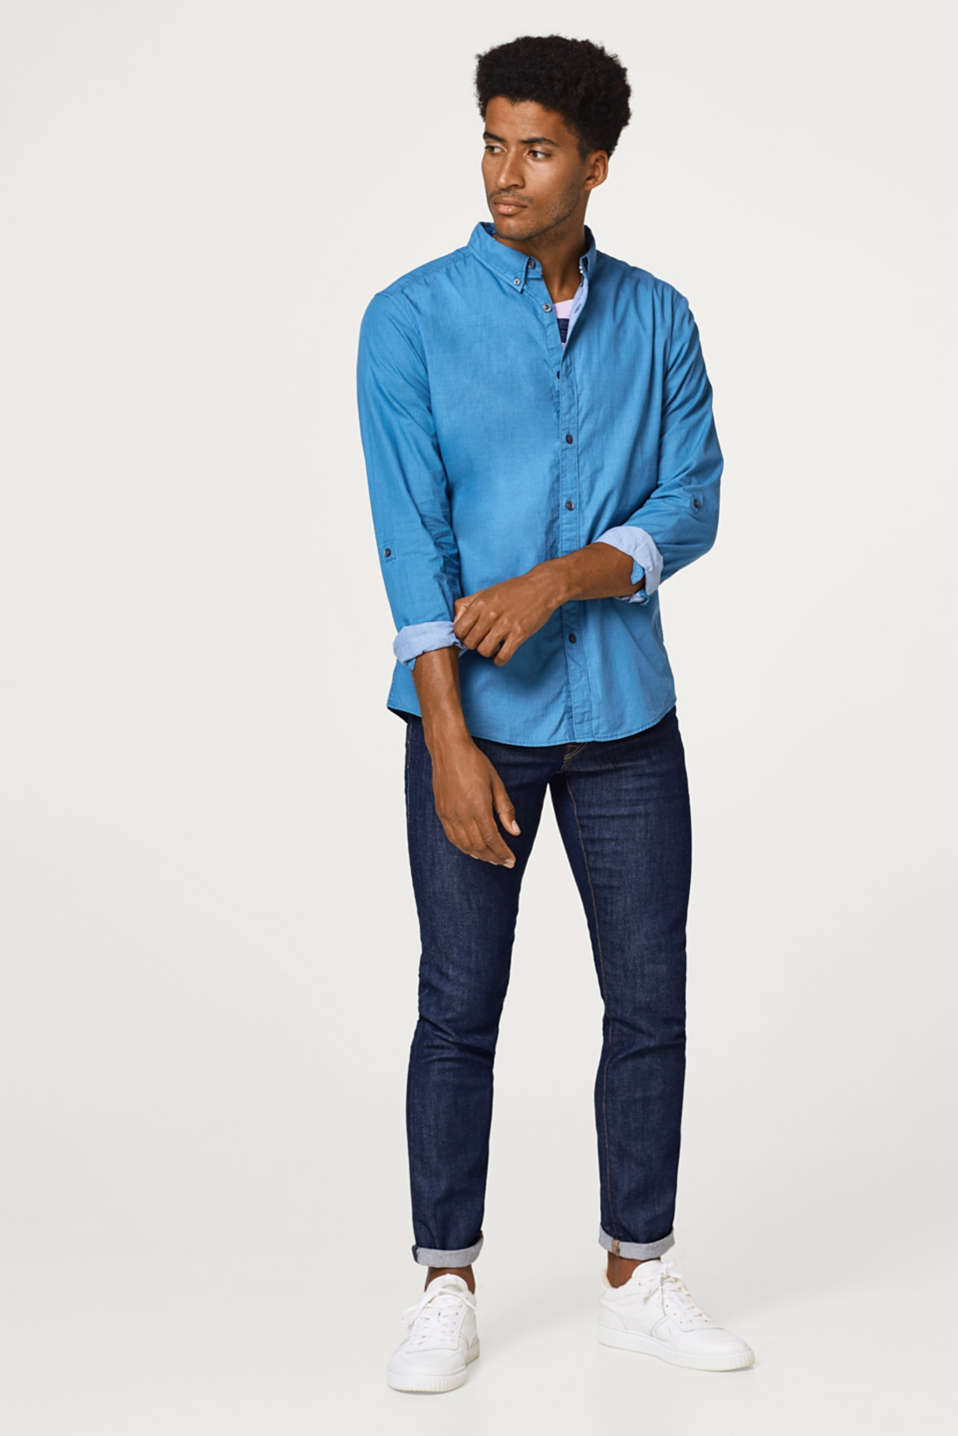 Shirt with button-down collar, 100% cotton